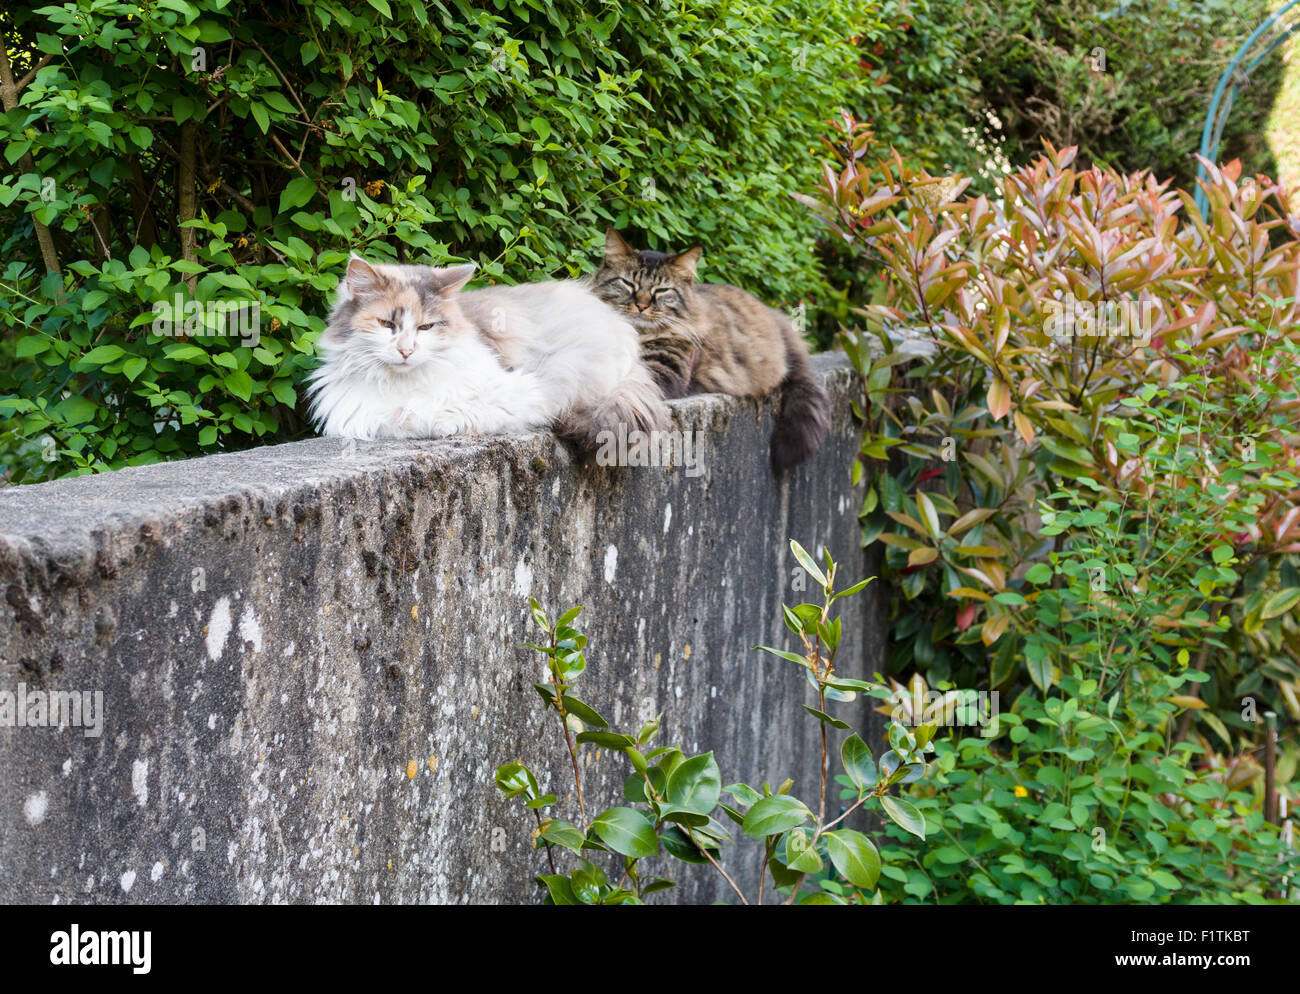 Two Persian Cats on a stone wall. Two fluffy cats one light and one dark sit on the top of an old concrete garden - Stock Image